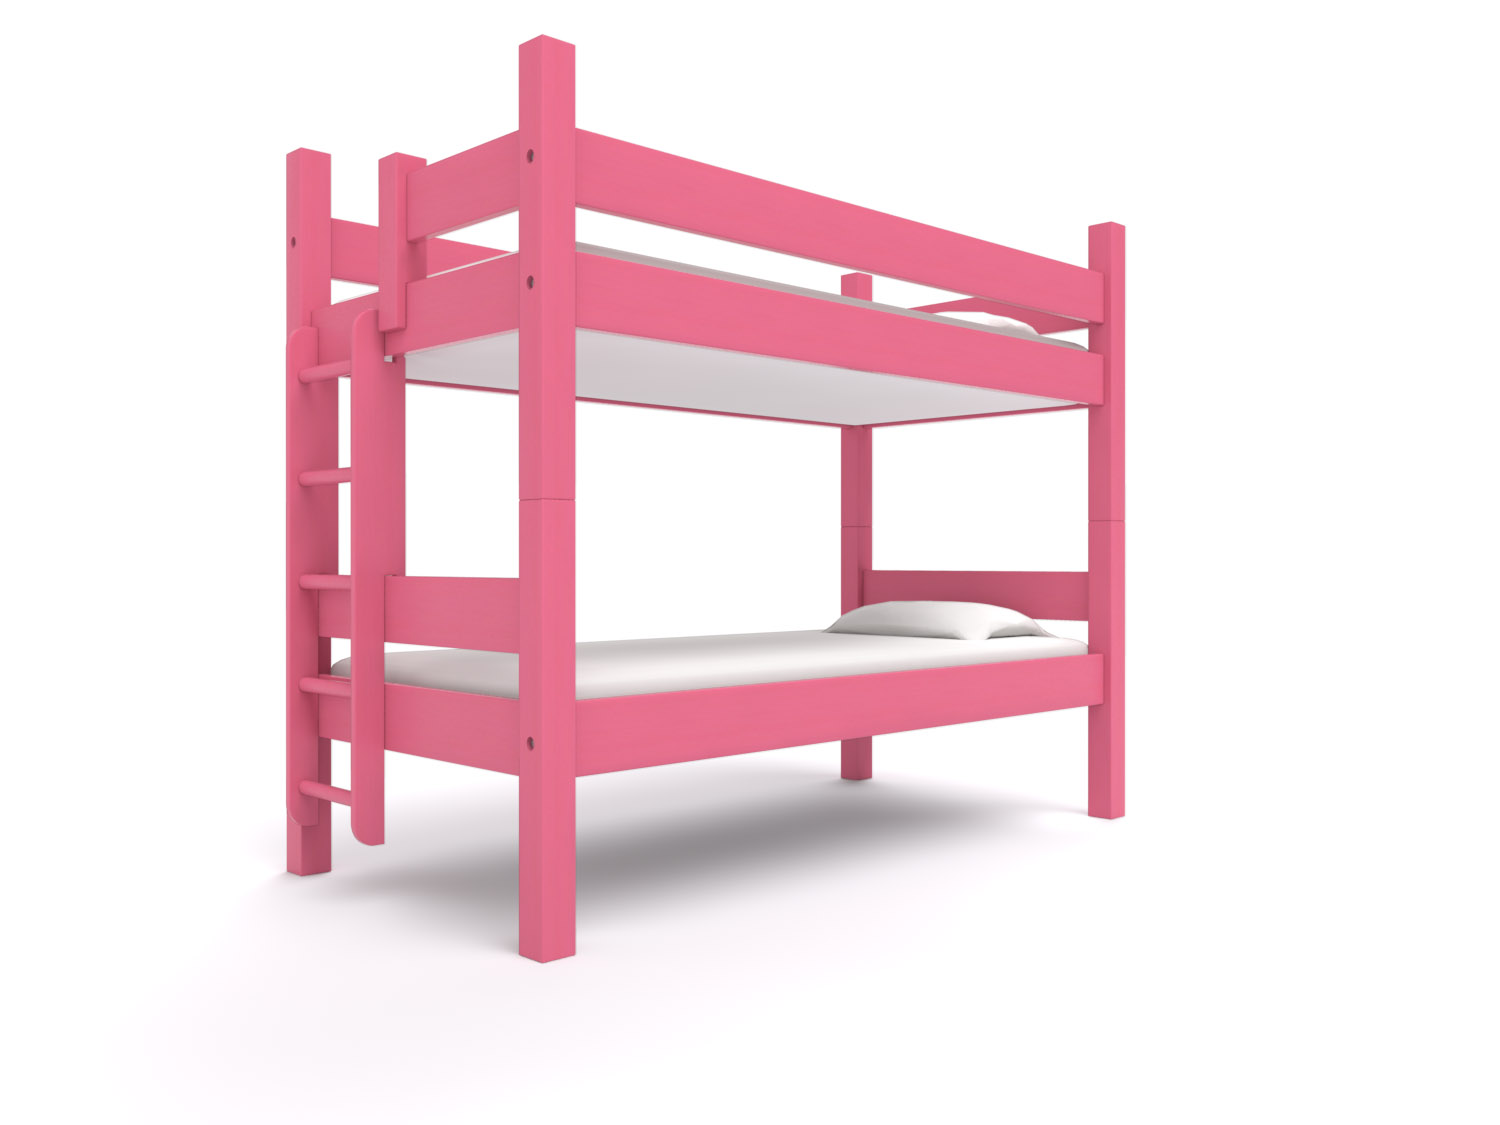 """ ANDROSCOGGIN "" XL Twin-over-Twin -  Made for adults! Two extra long twin beds are stacked to form an XL Twin-over-Twin bunk bed w/ extra headroom. Options: Trundle or storage drawers.  Starting at $2395 :    Click for Custom Quote"